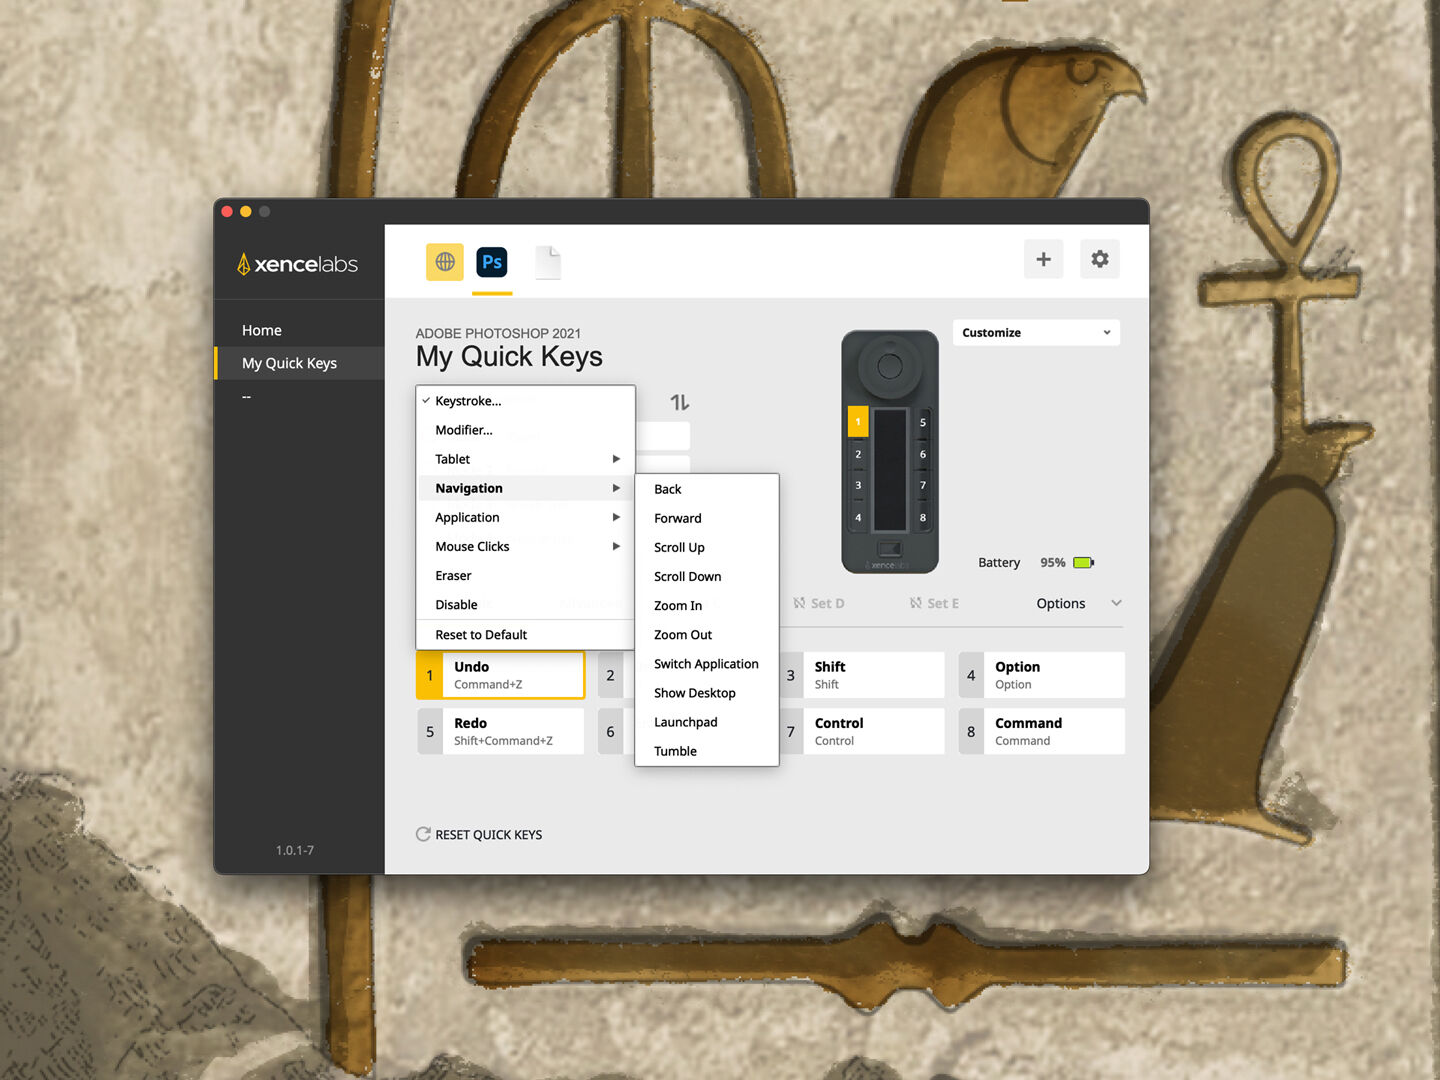 Customizing the Xencelabs Quick Keys Remote